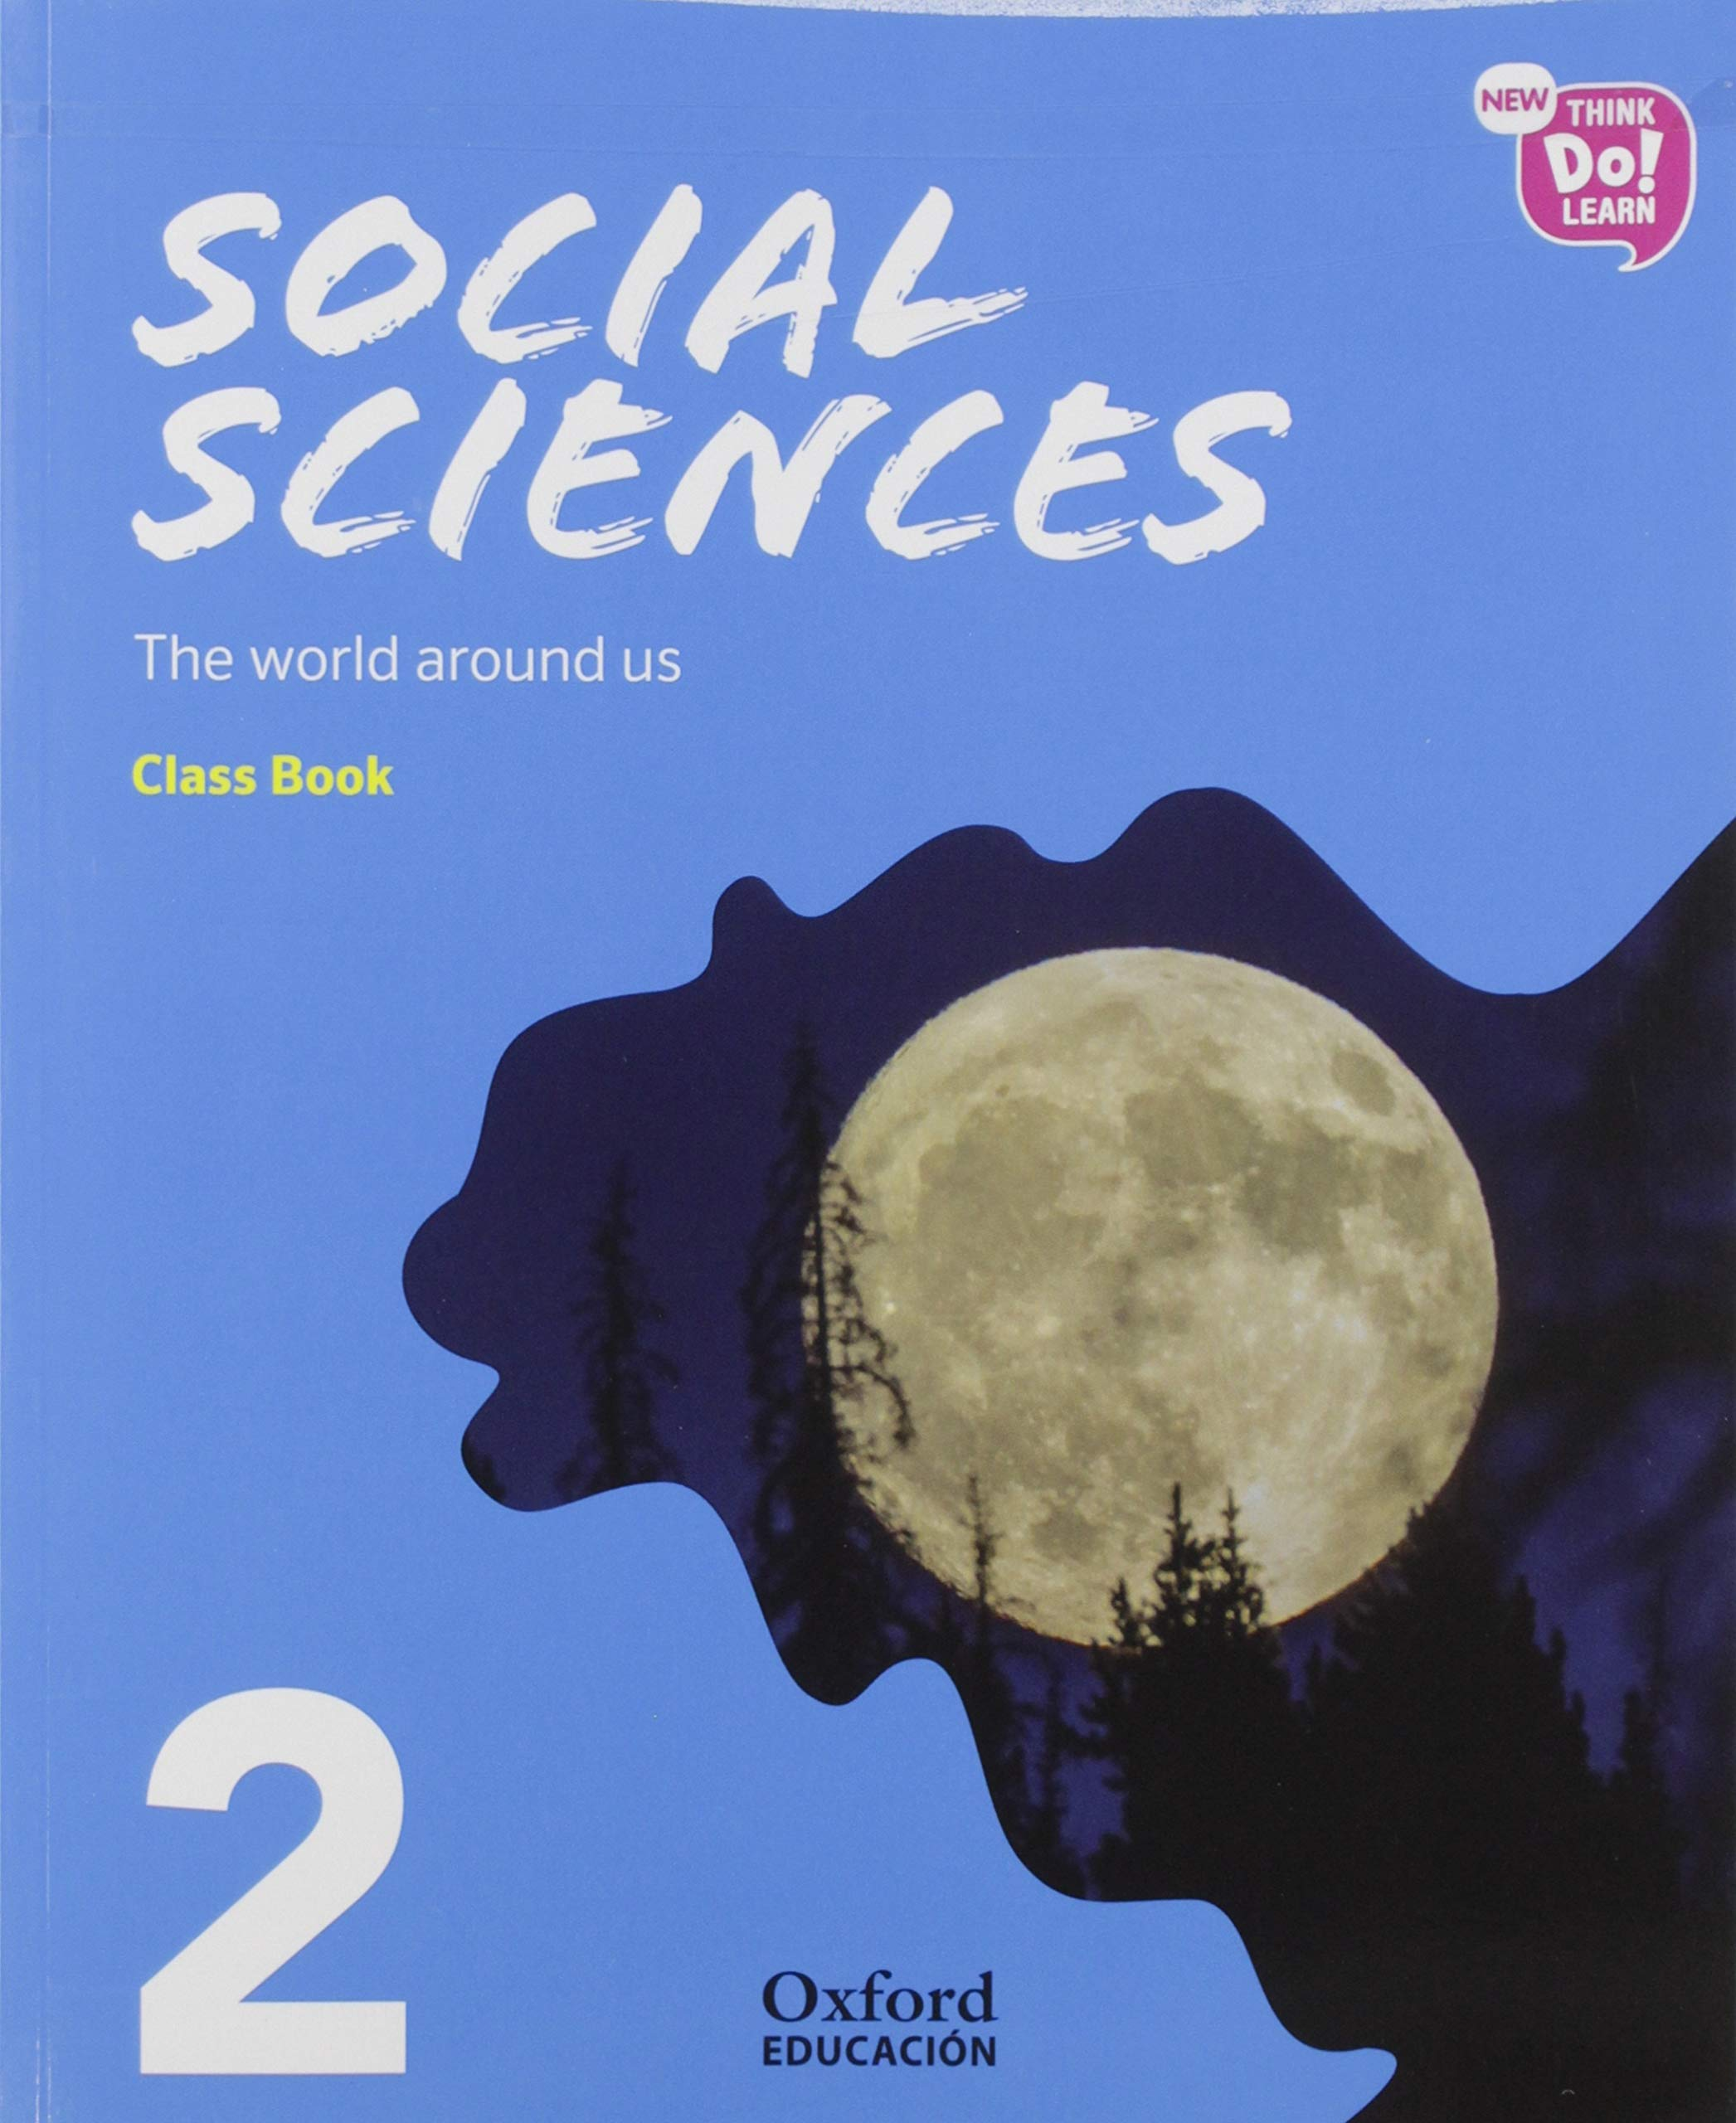 New Think Do Learn Social Sciences 2. Class Book + Stories Pack The world around us National Edition: Amazon.es: Vv.Aa: Libros en idiomas extranjeros